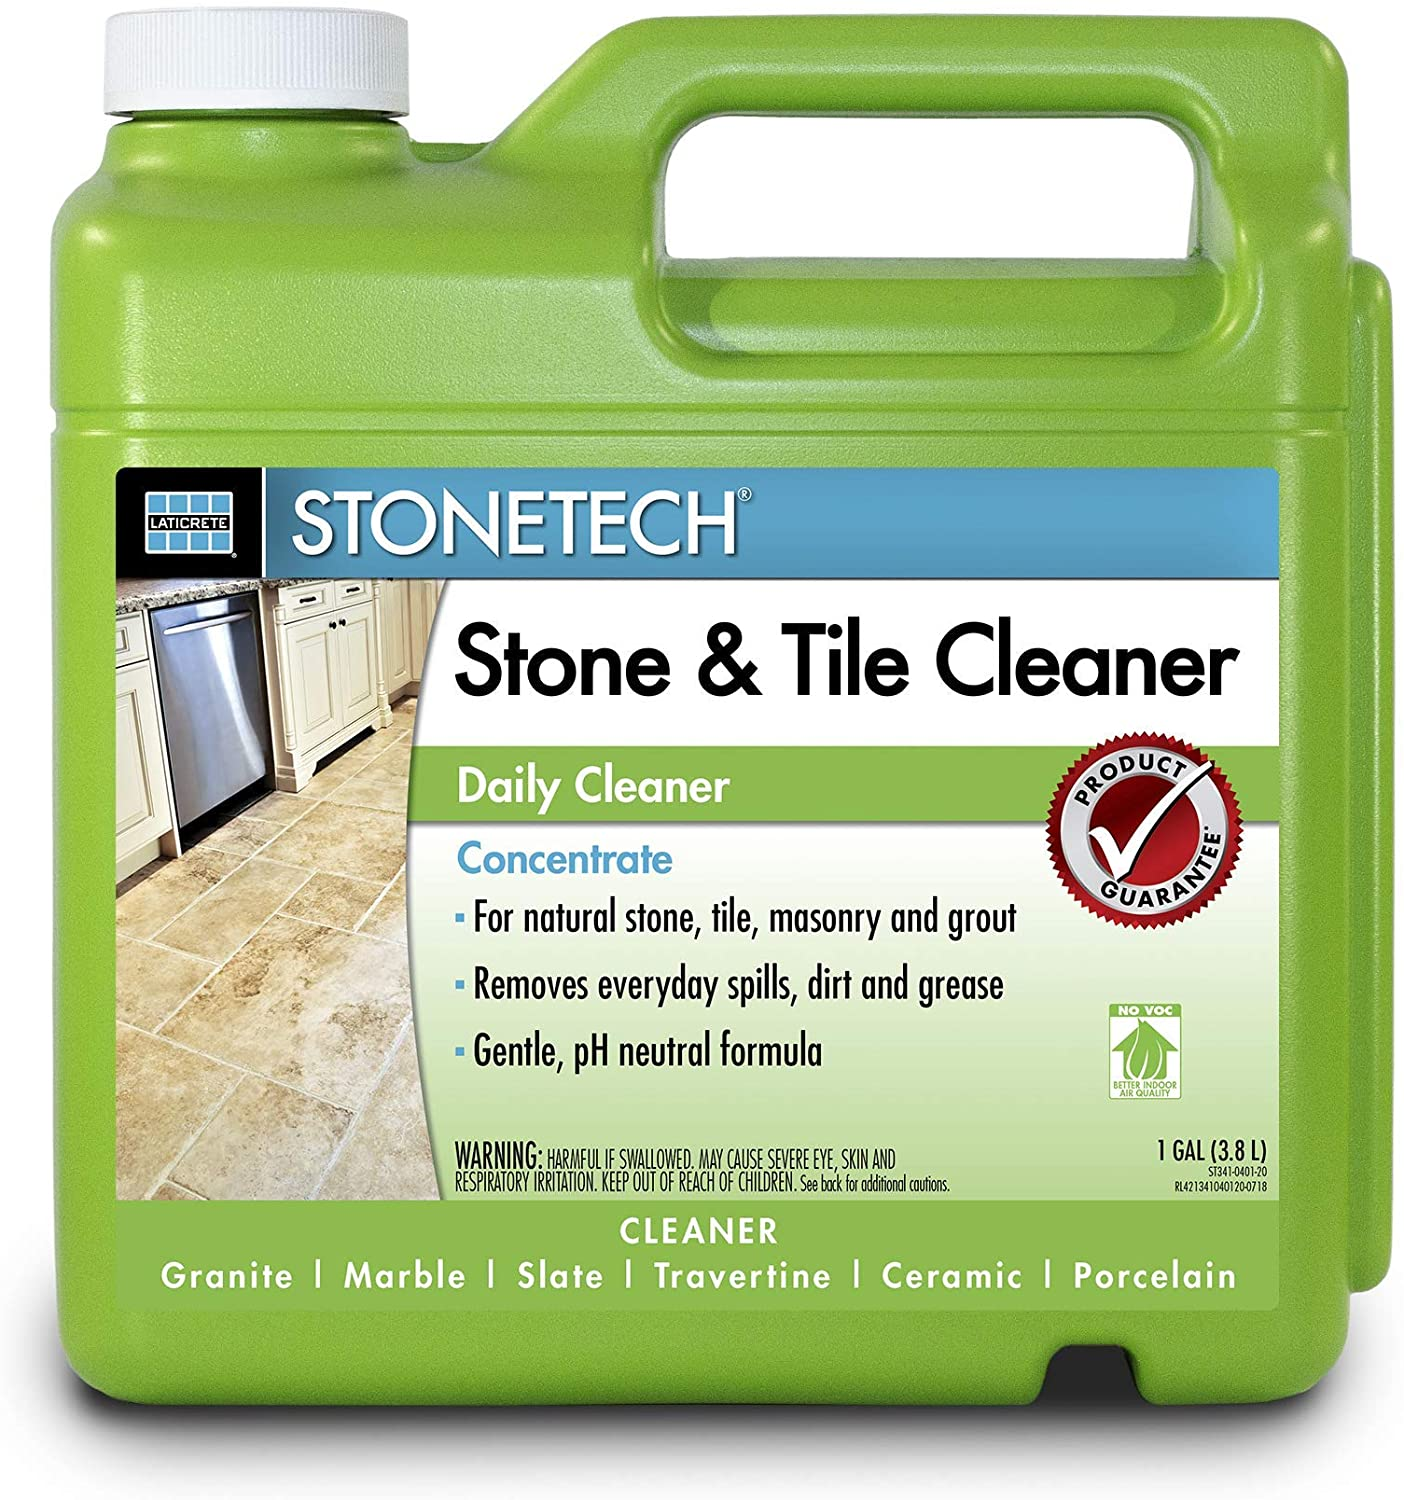 StoneTech All-Purpose Daily Cleaner